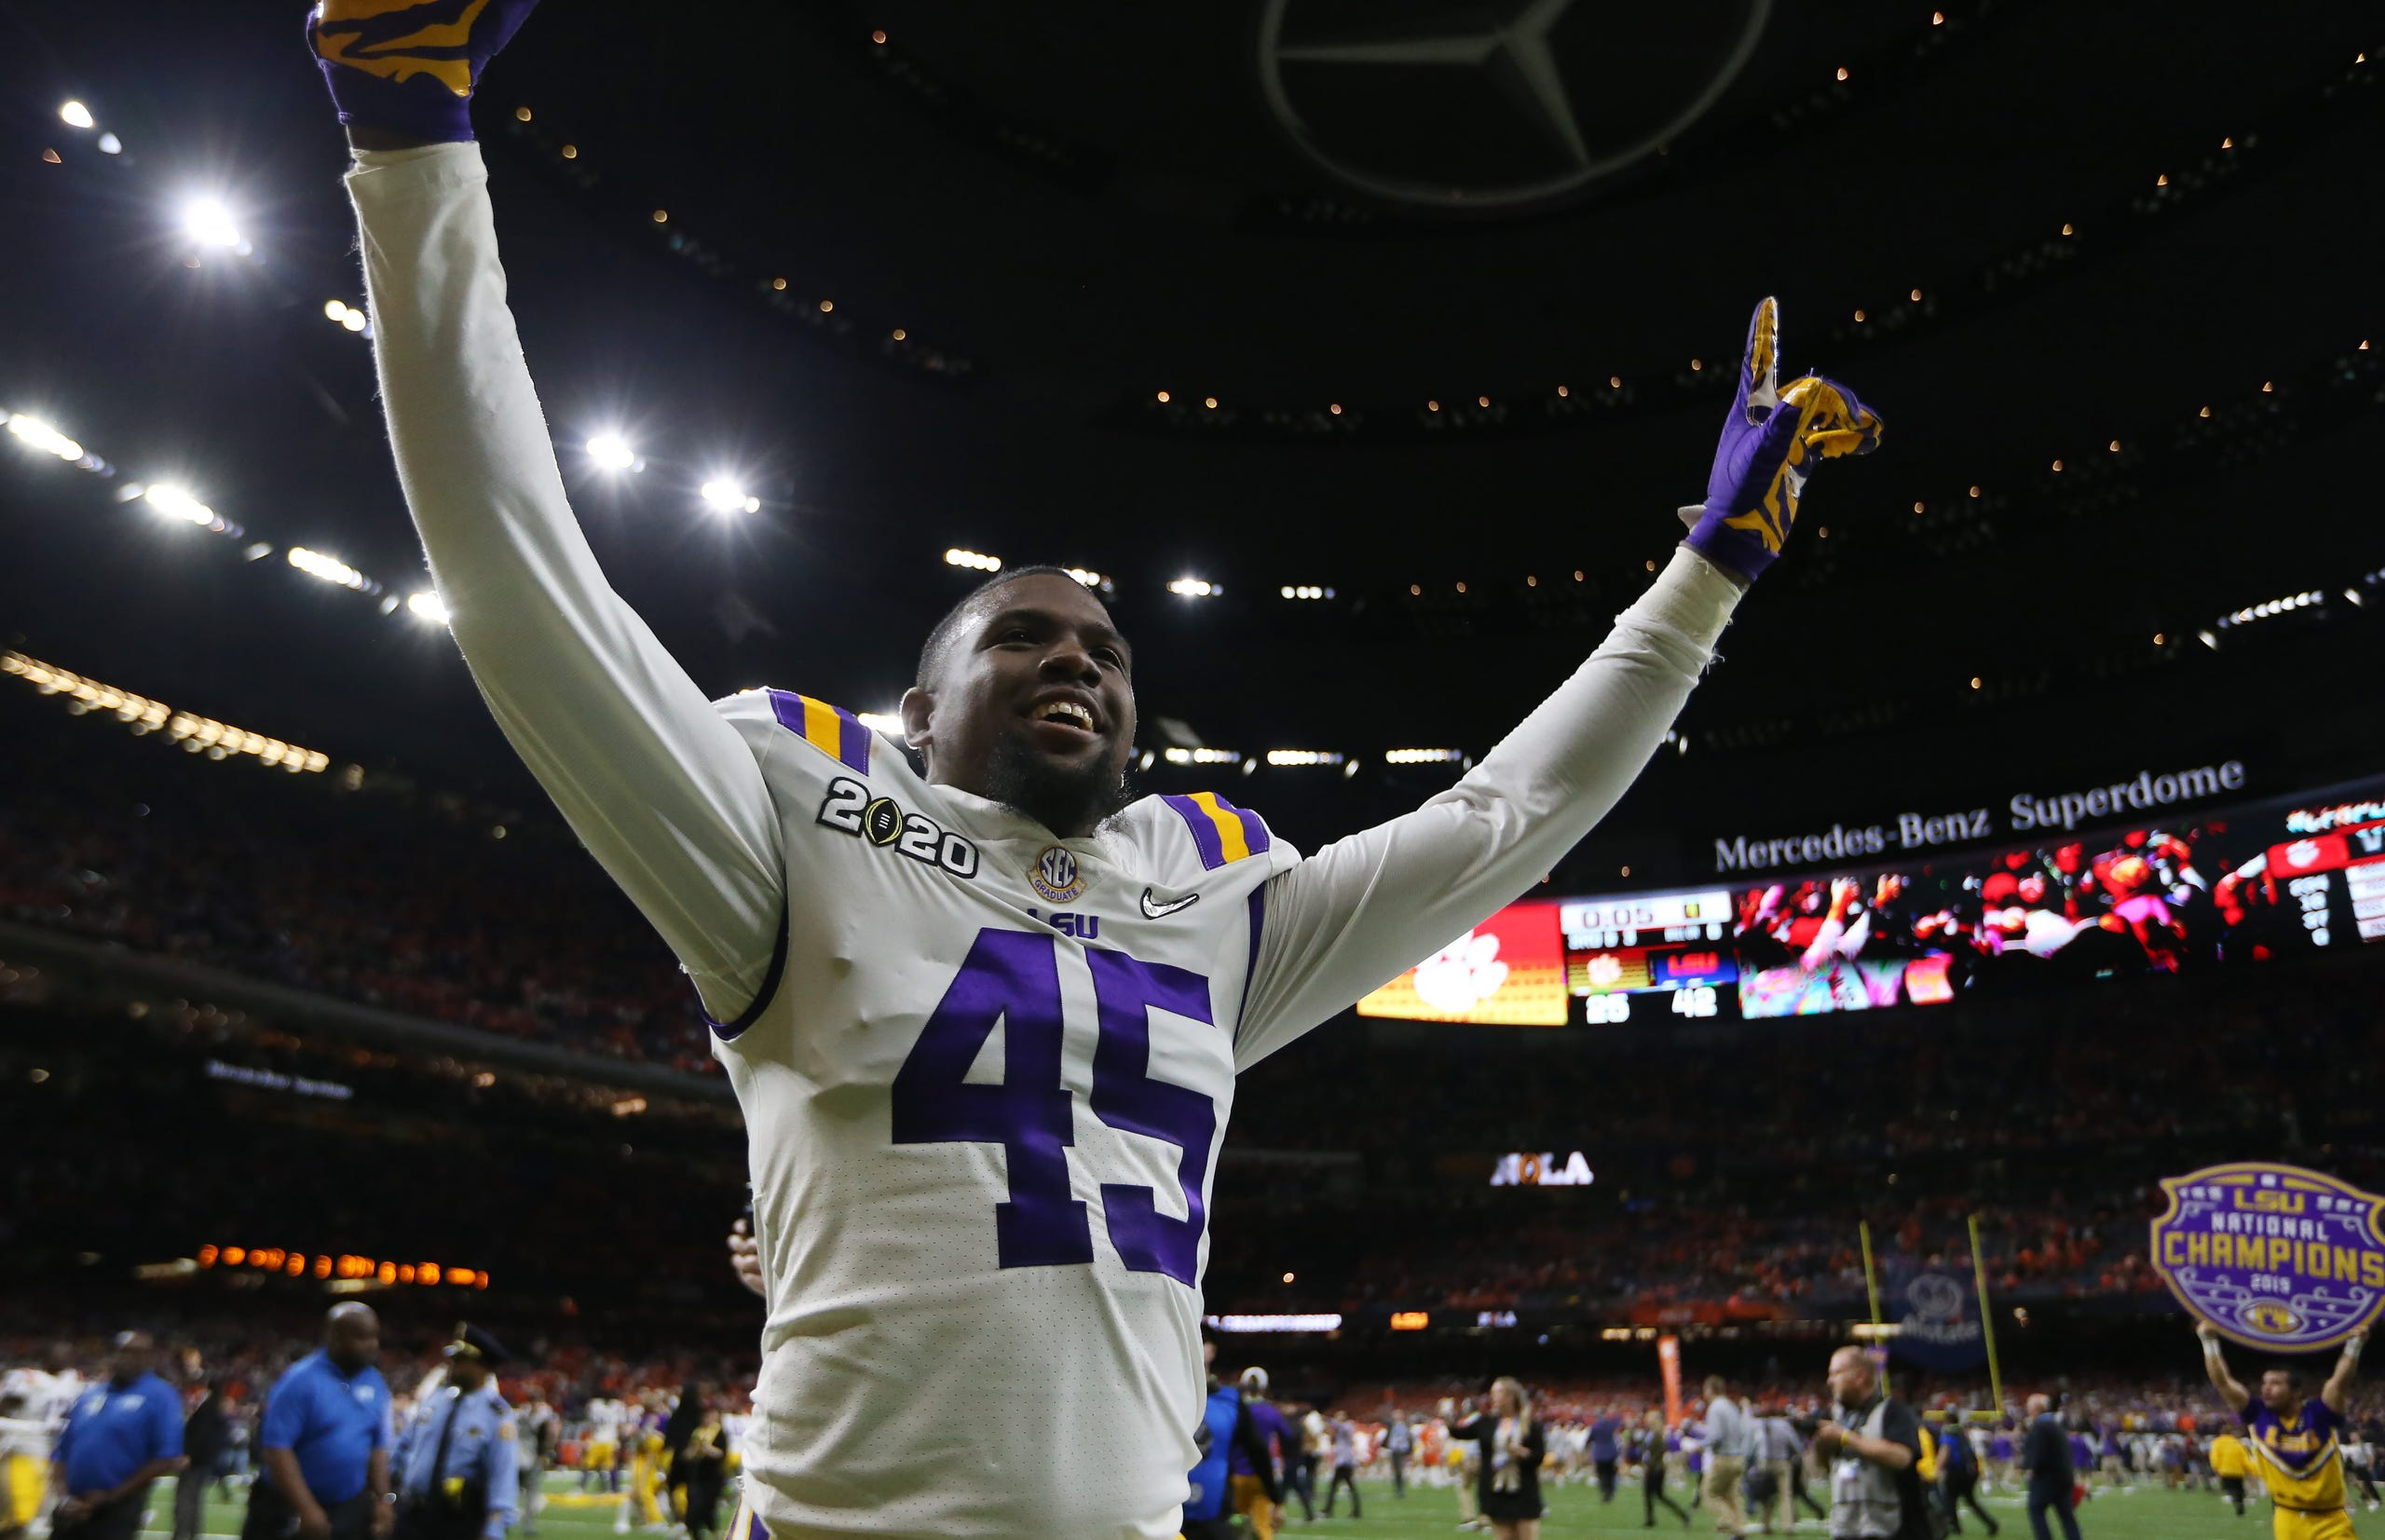 LSU Tigers linebacker Michael Divinity Jr. celebrates after defeating the Clemson Tigers.